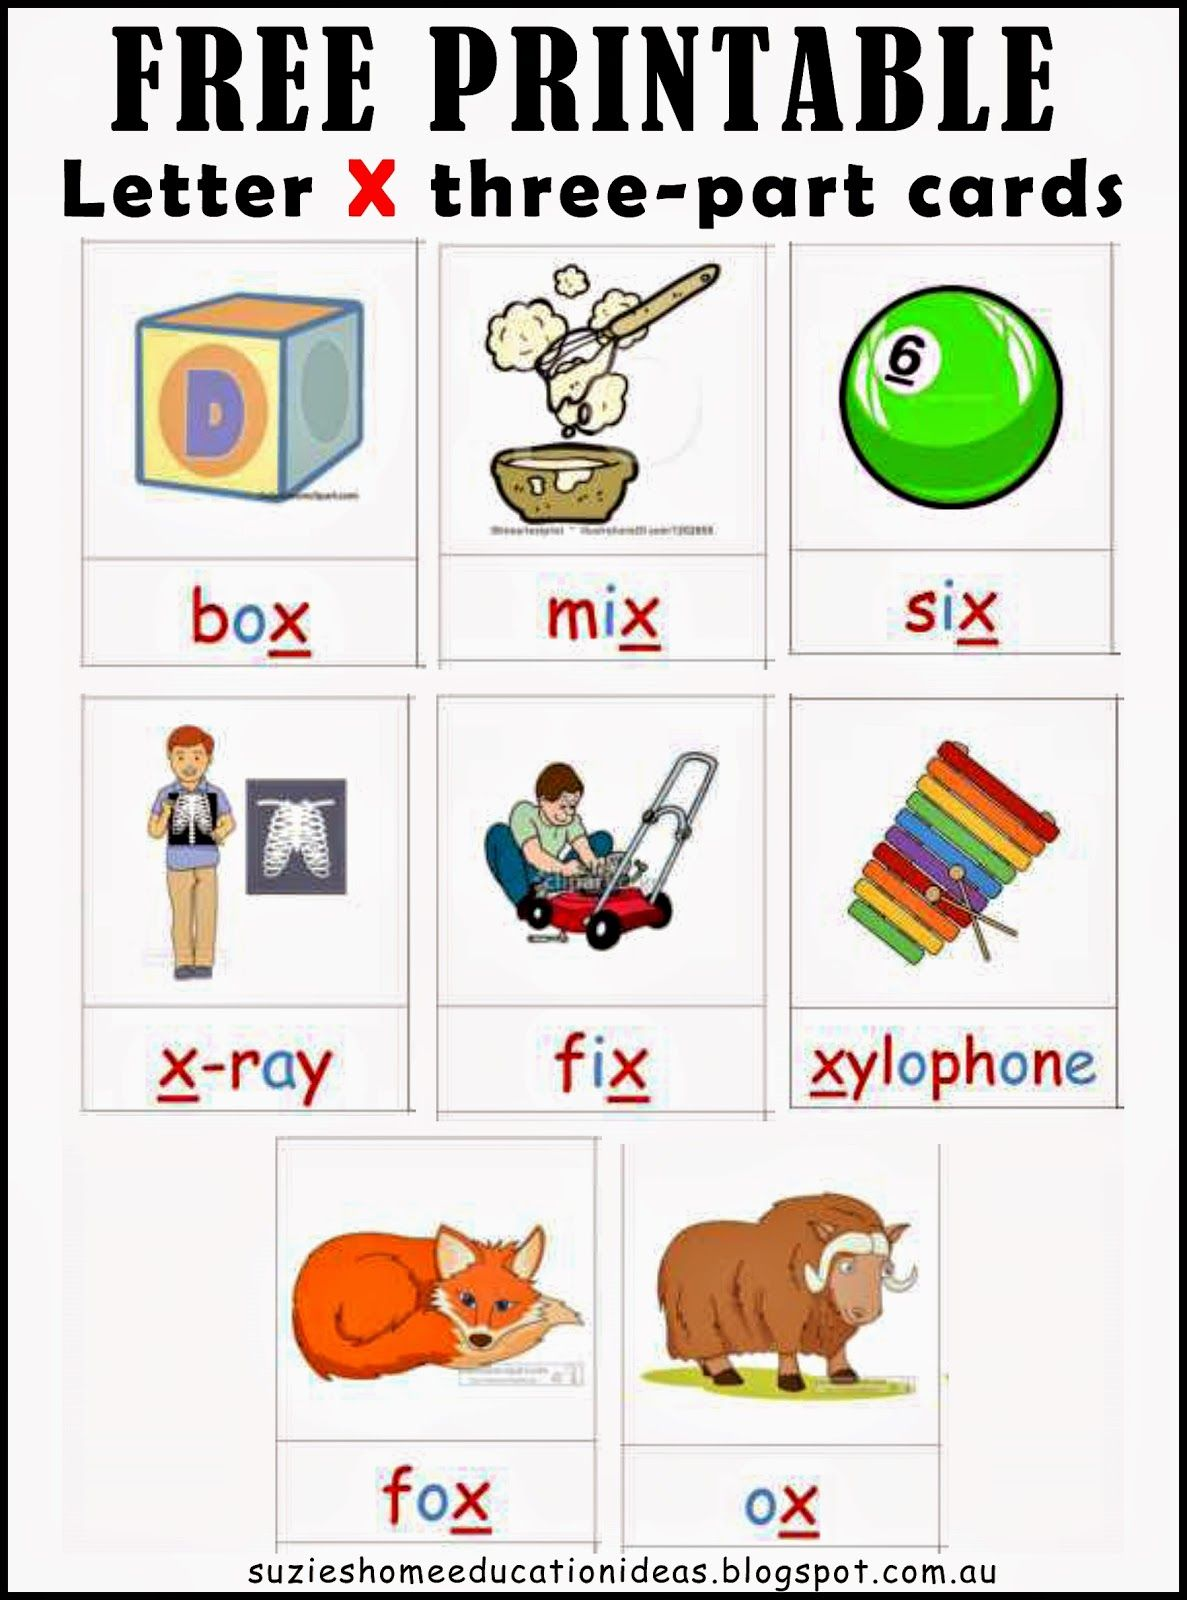 words with the letter x letter x printable cards and activity ideas classroom 25773 | 340afb86d57cc822bb4d040b5e8ff8be